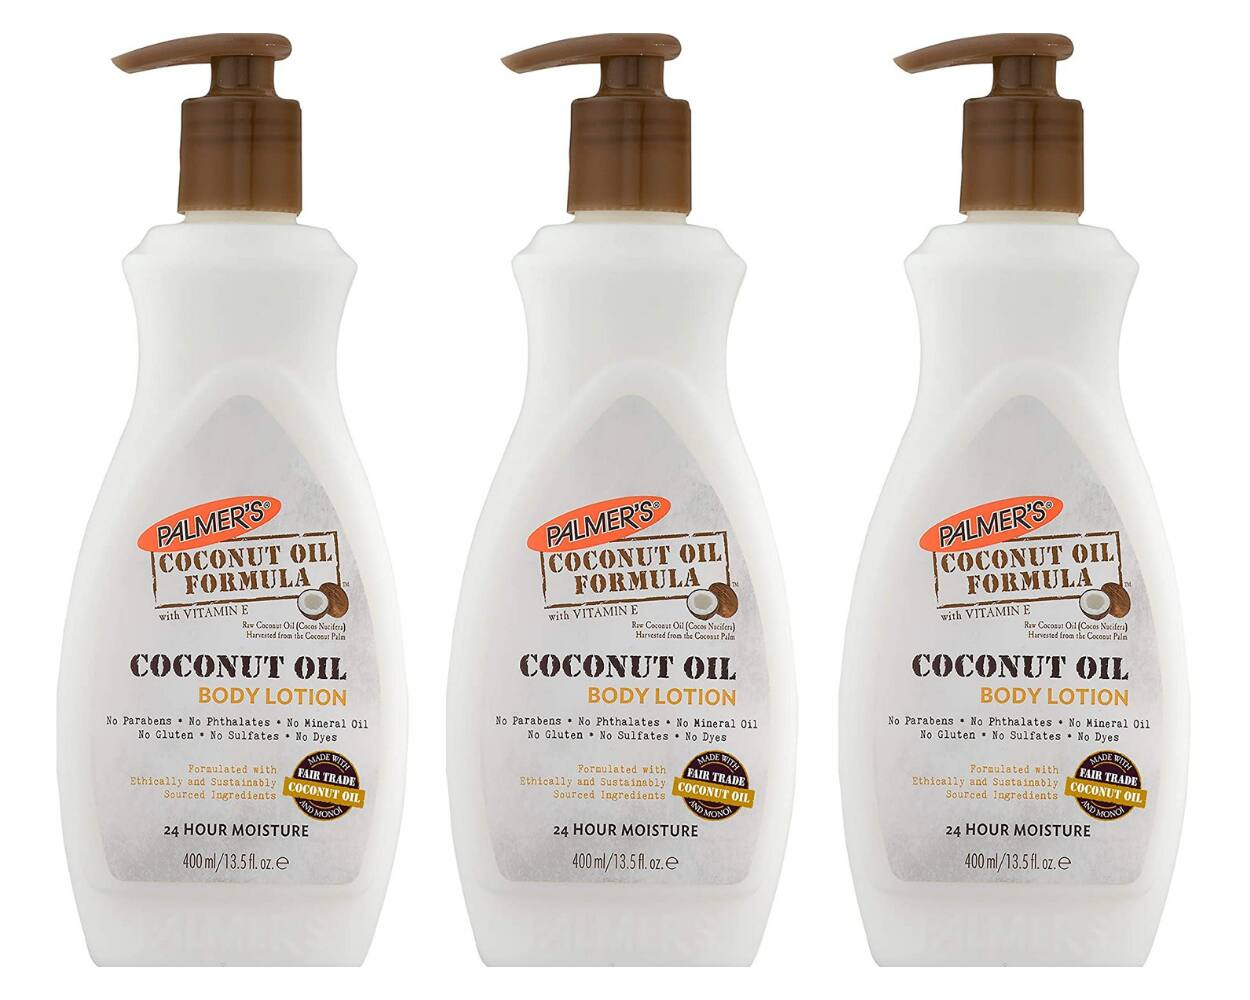 13.5-Oz Palmer's Coconut Oil Formula w/ Vitamin E Body Lotion 3 for $8.65 ($2.88 each) + Free Shipping w/ Prime or on $25+